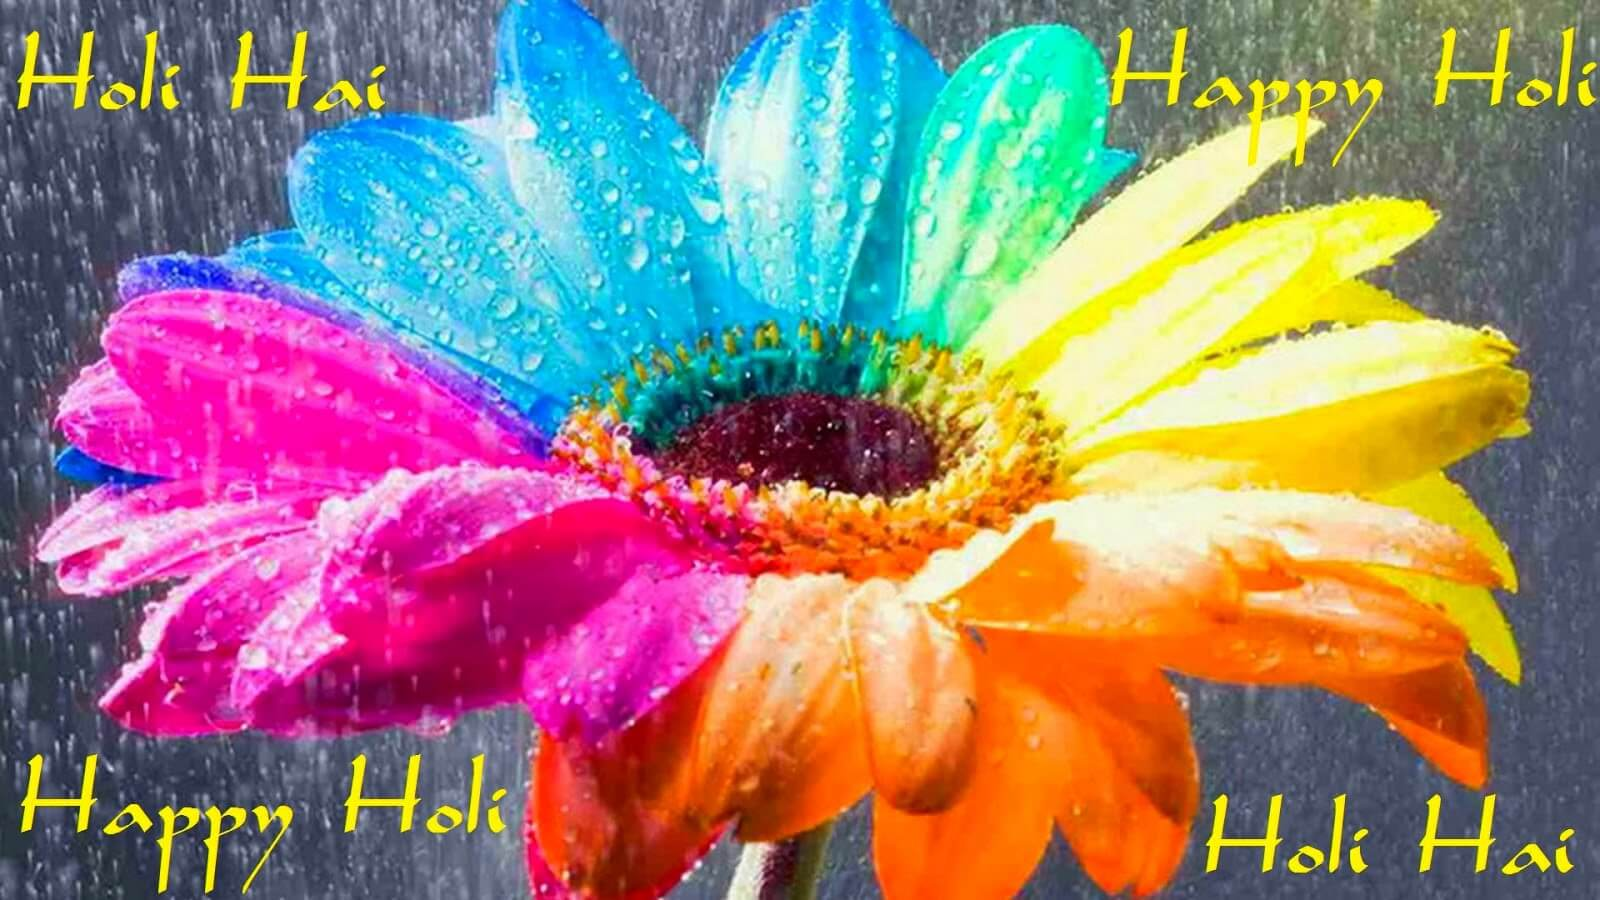 happy holi festival greetings wishes hd 3d sunflower wallpaper